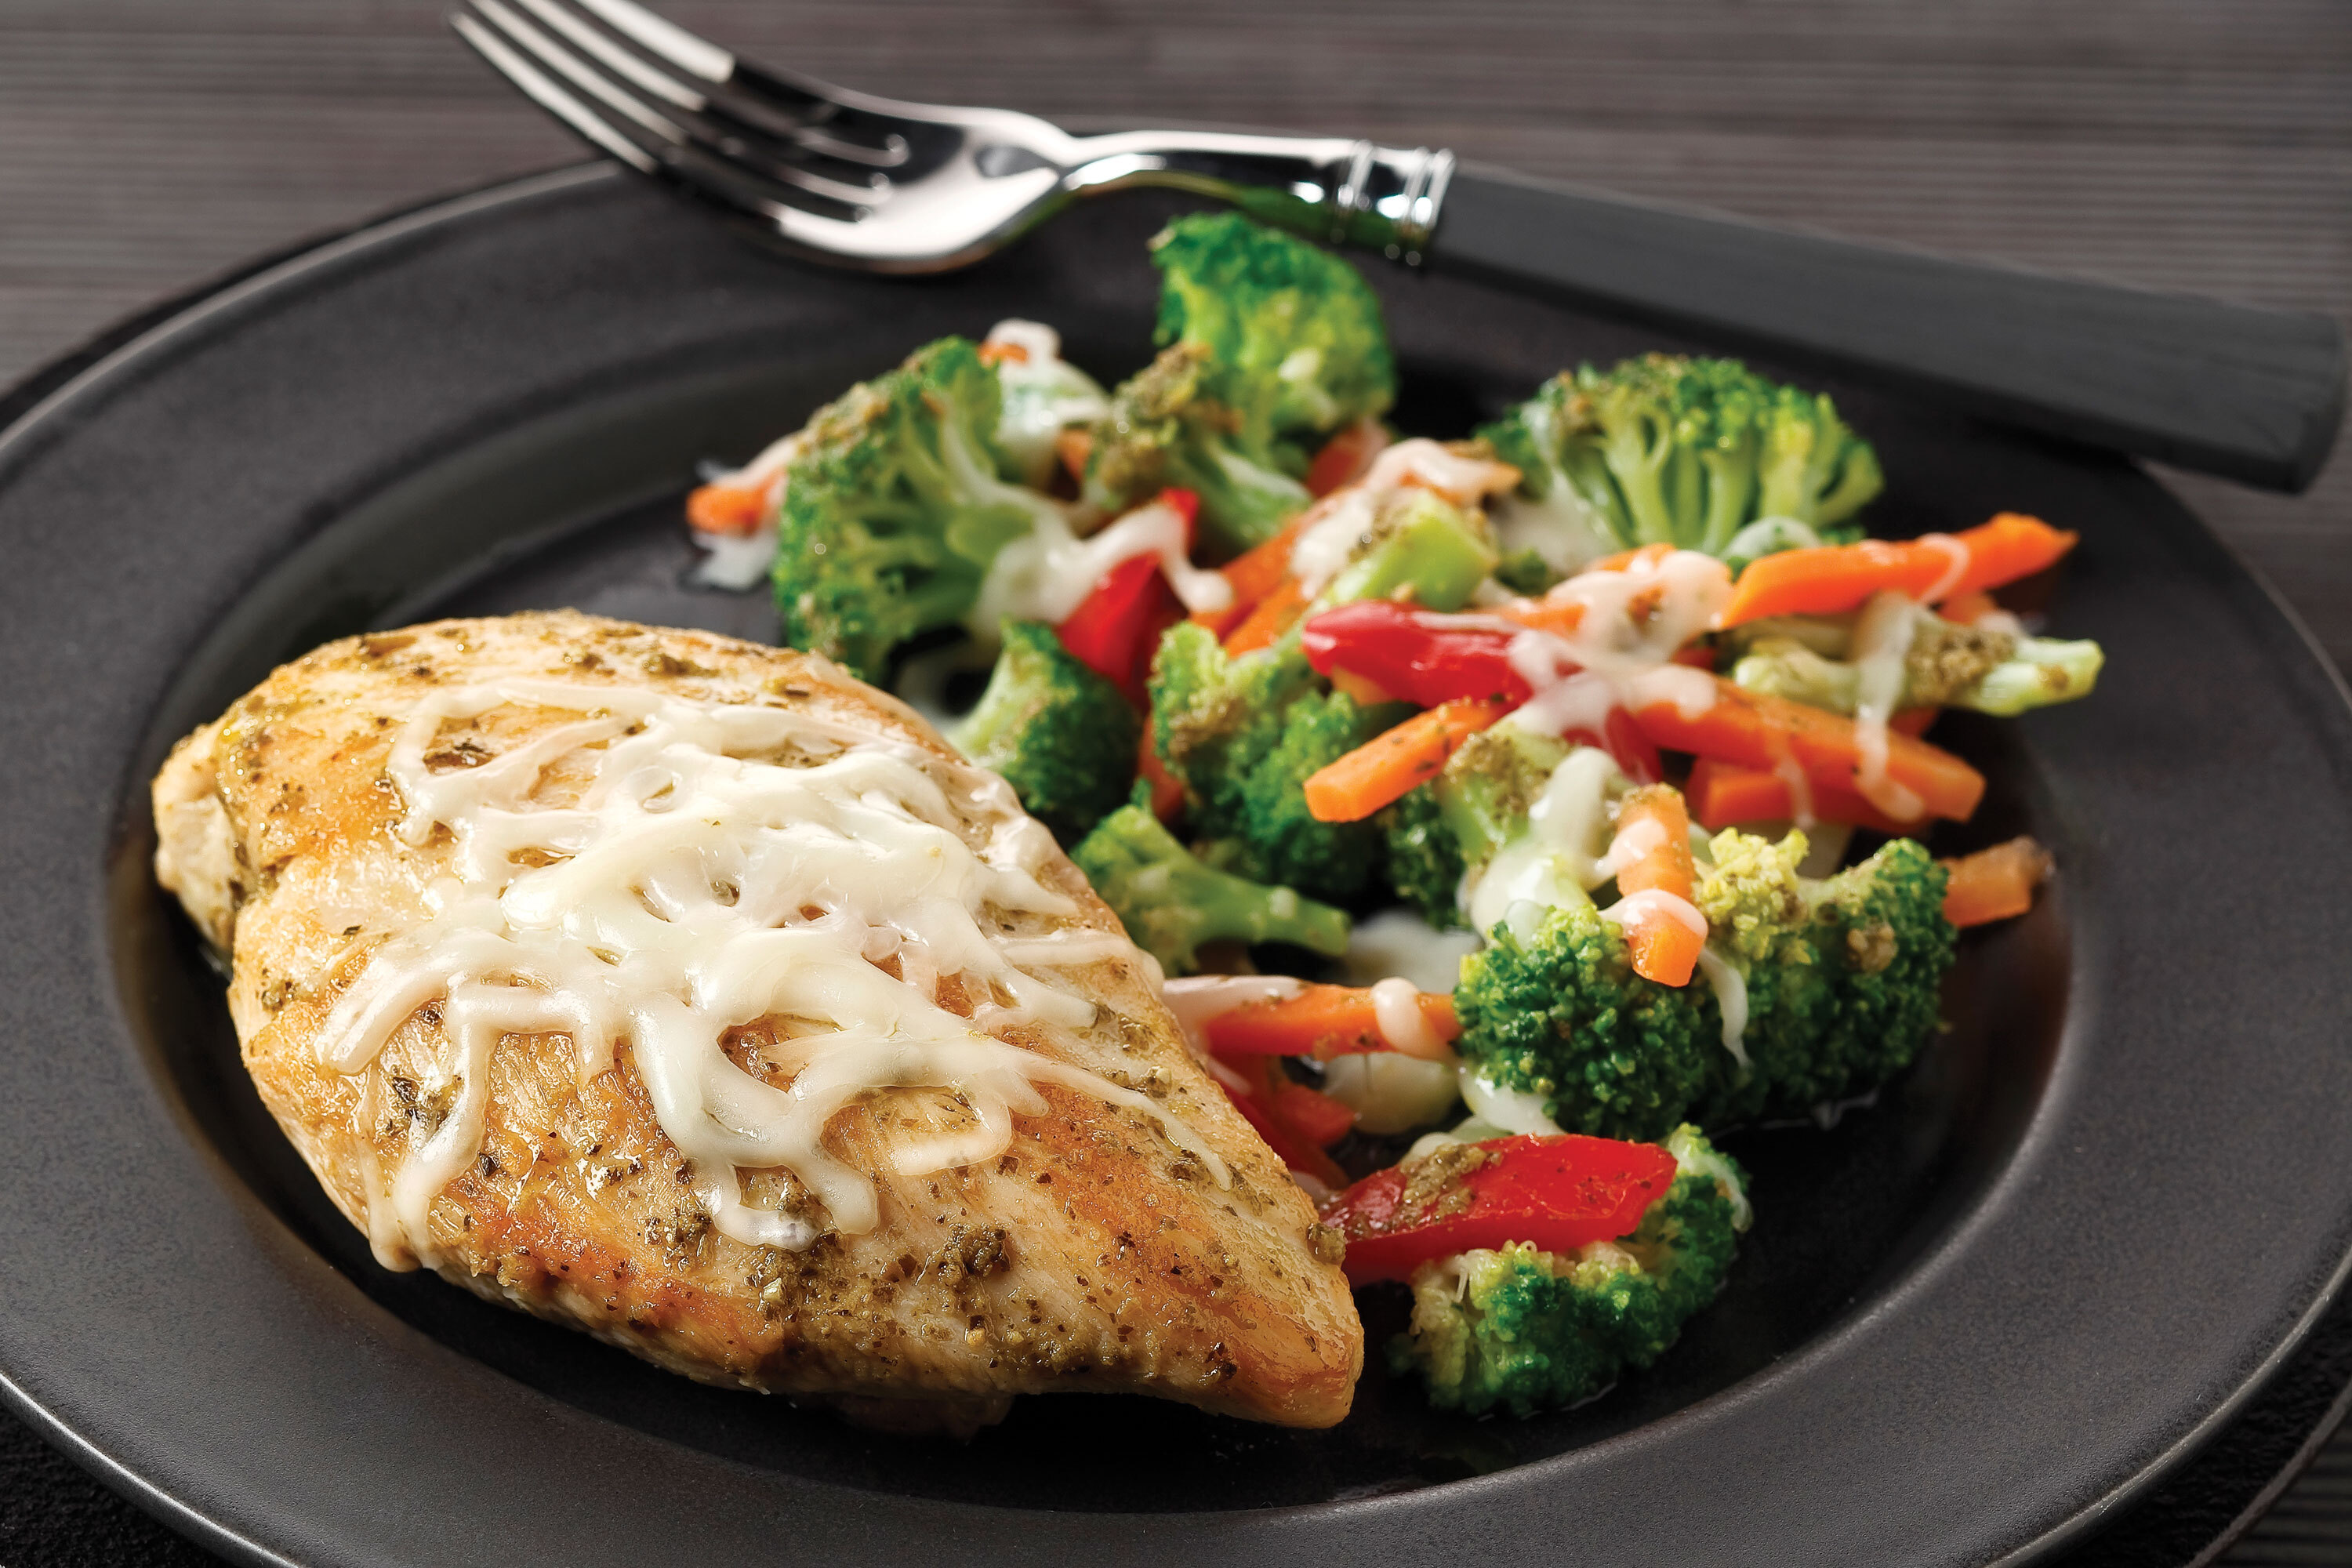 California Chicken and Vegetables